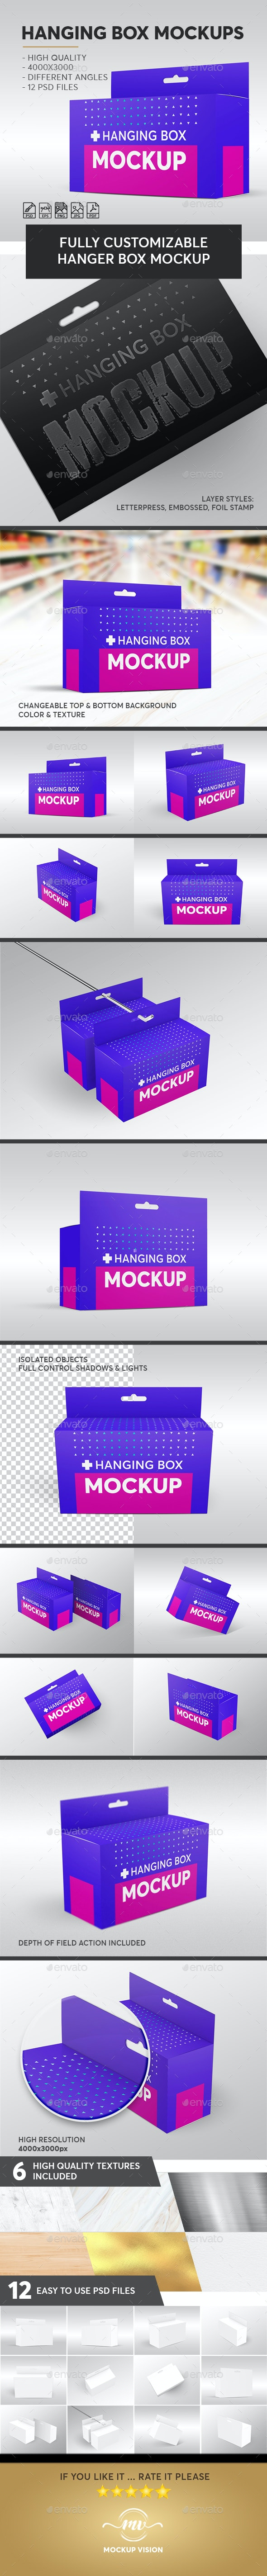 Hanging Rectangle Box Mockups V.2 - Miscellaneous Packaging